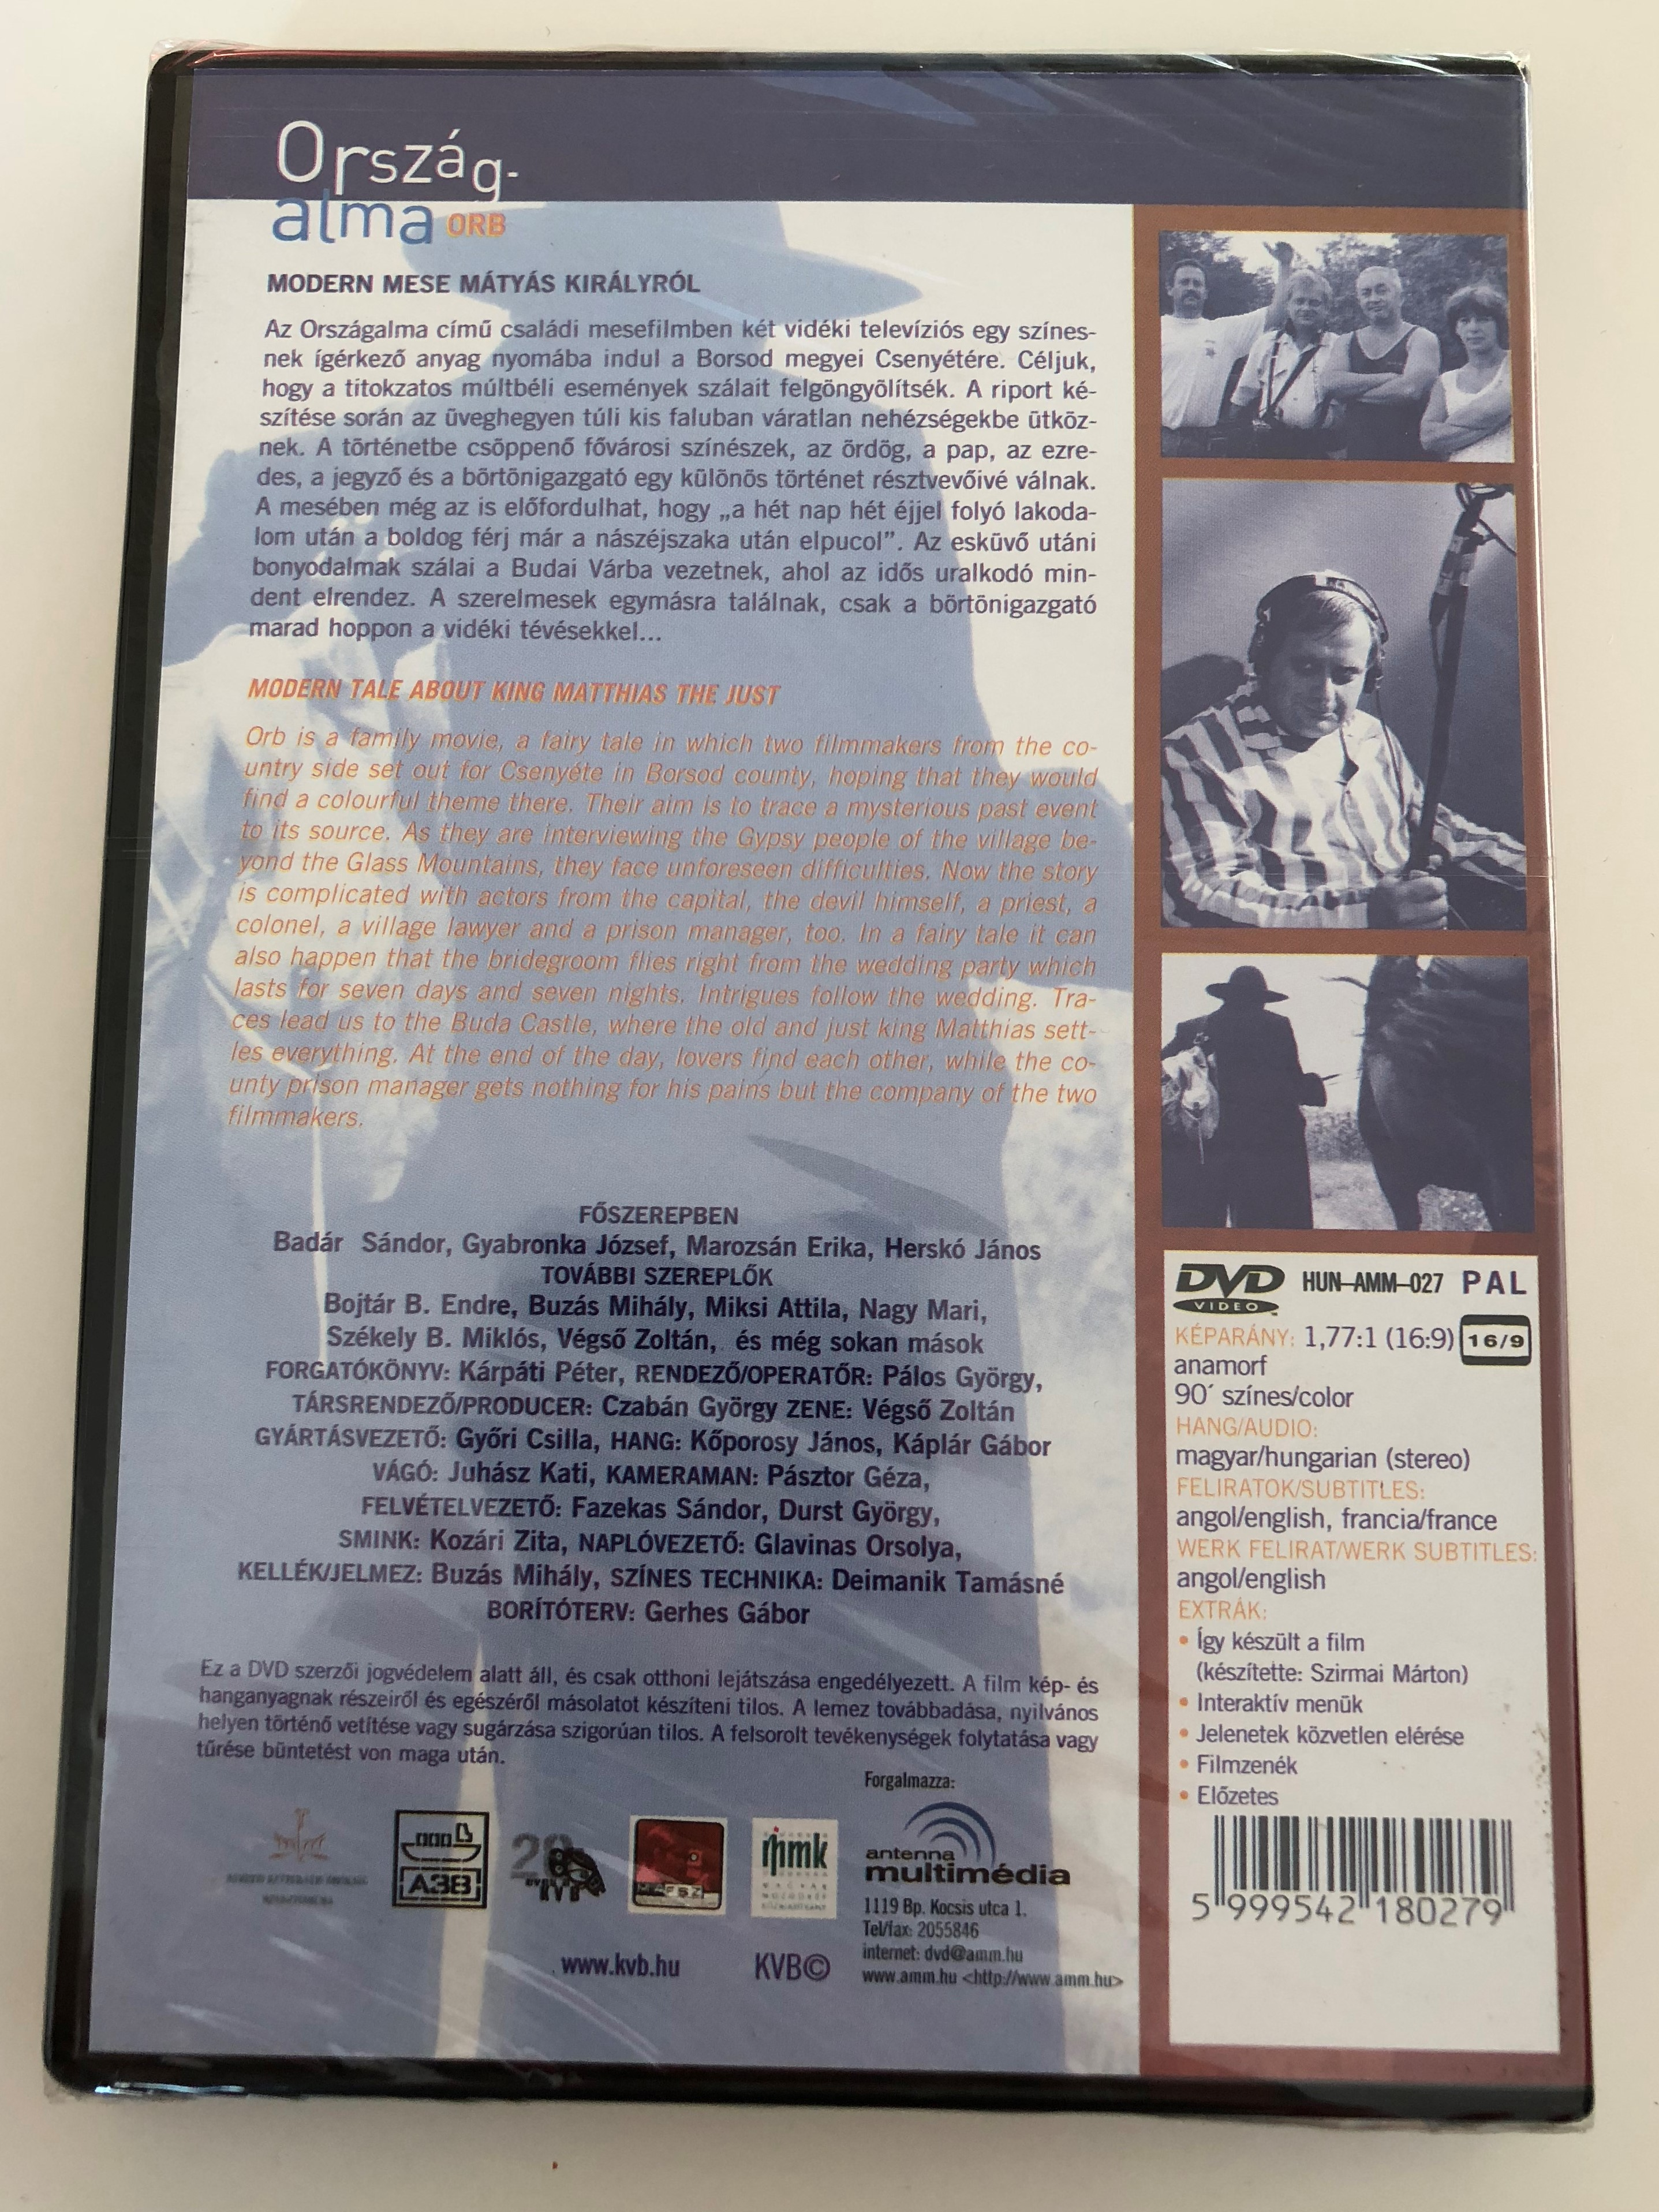 orsz-g-alma-dvd-1998-orb-directed-by-p-los-gy-rgy-starring-bad-r-s-ndor-gyabronka-j-zsef-marozs-n-erika-hersk-j-nos-2-.jpg